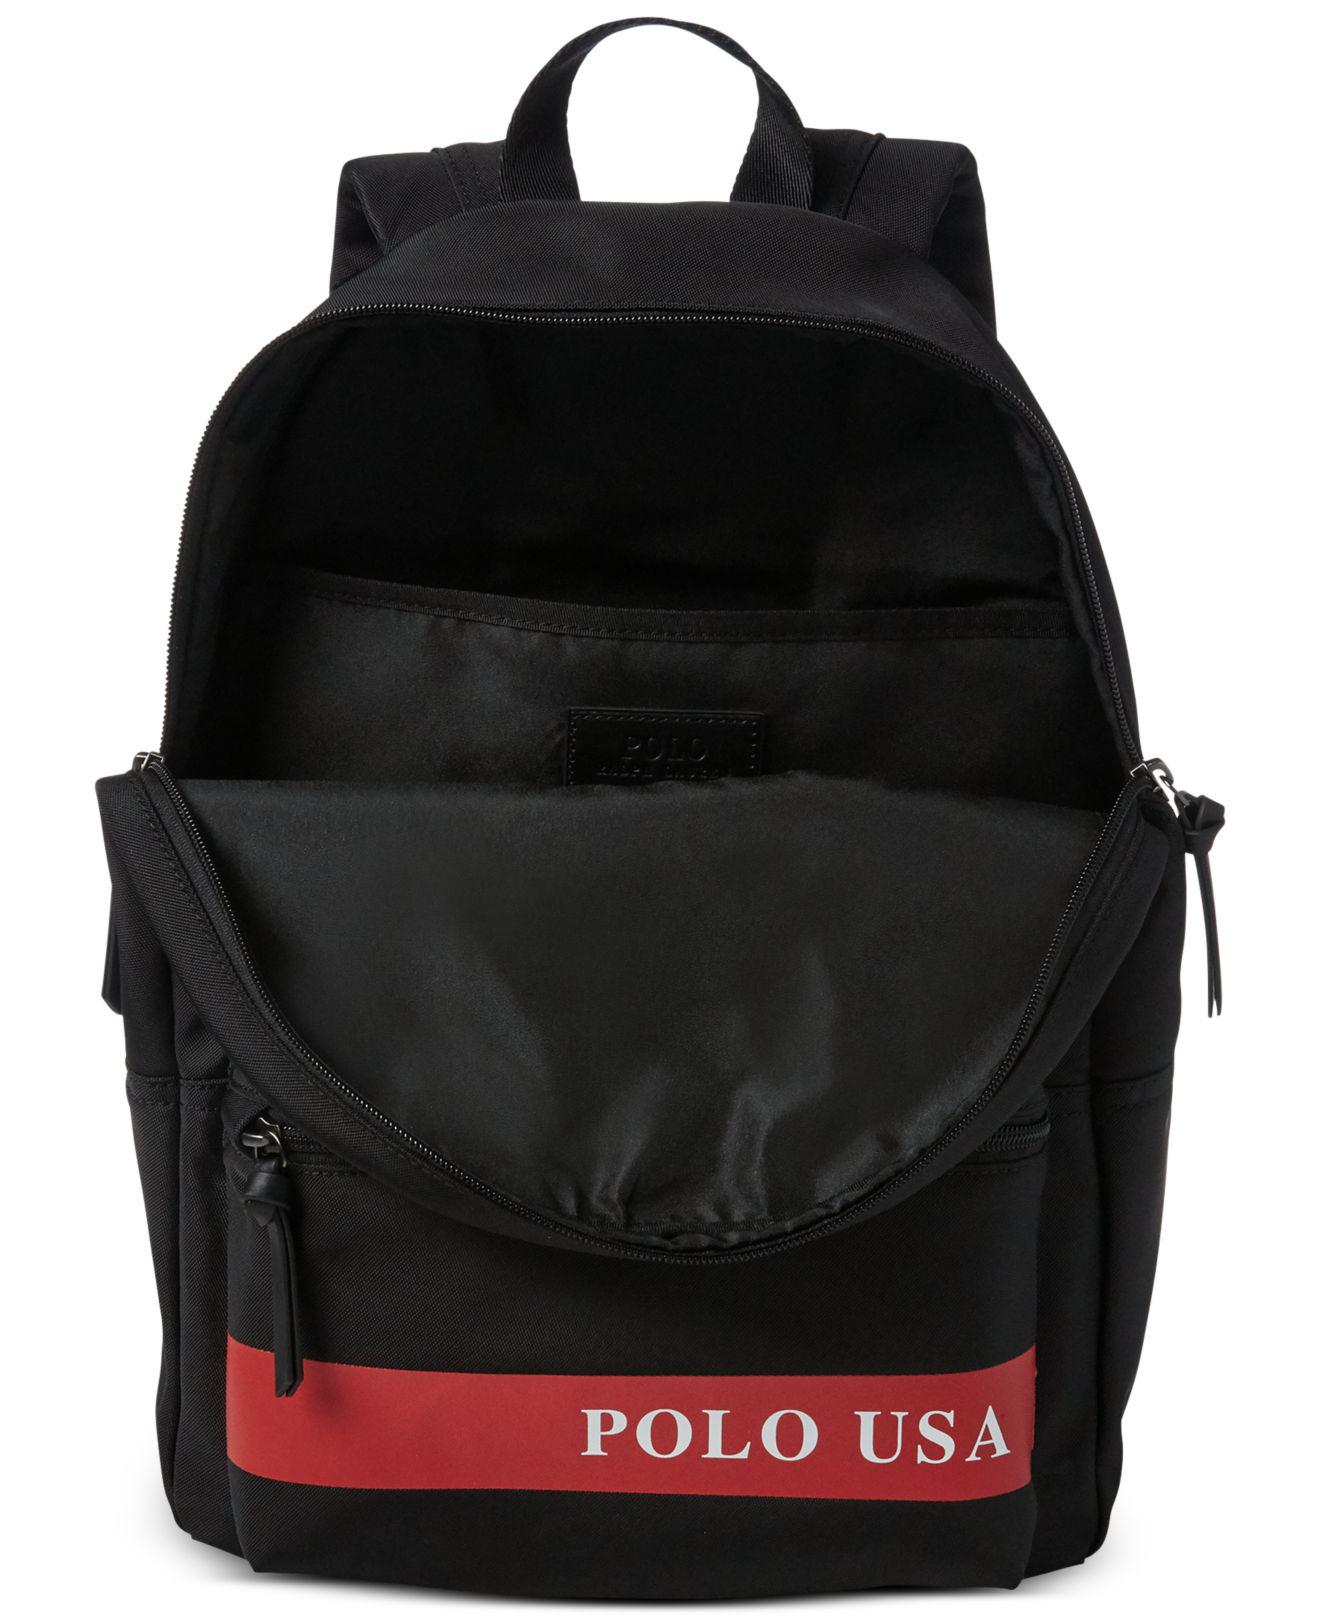 Lyst - Polo Ralph Lauren Water-repellent Downhill Skier Backpack in Black  for Men 2d7a8082a6a26